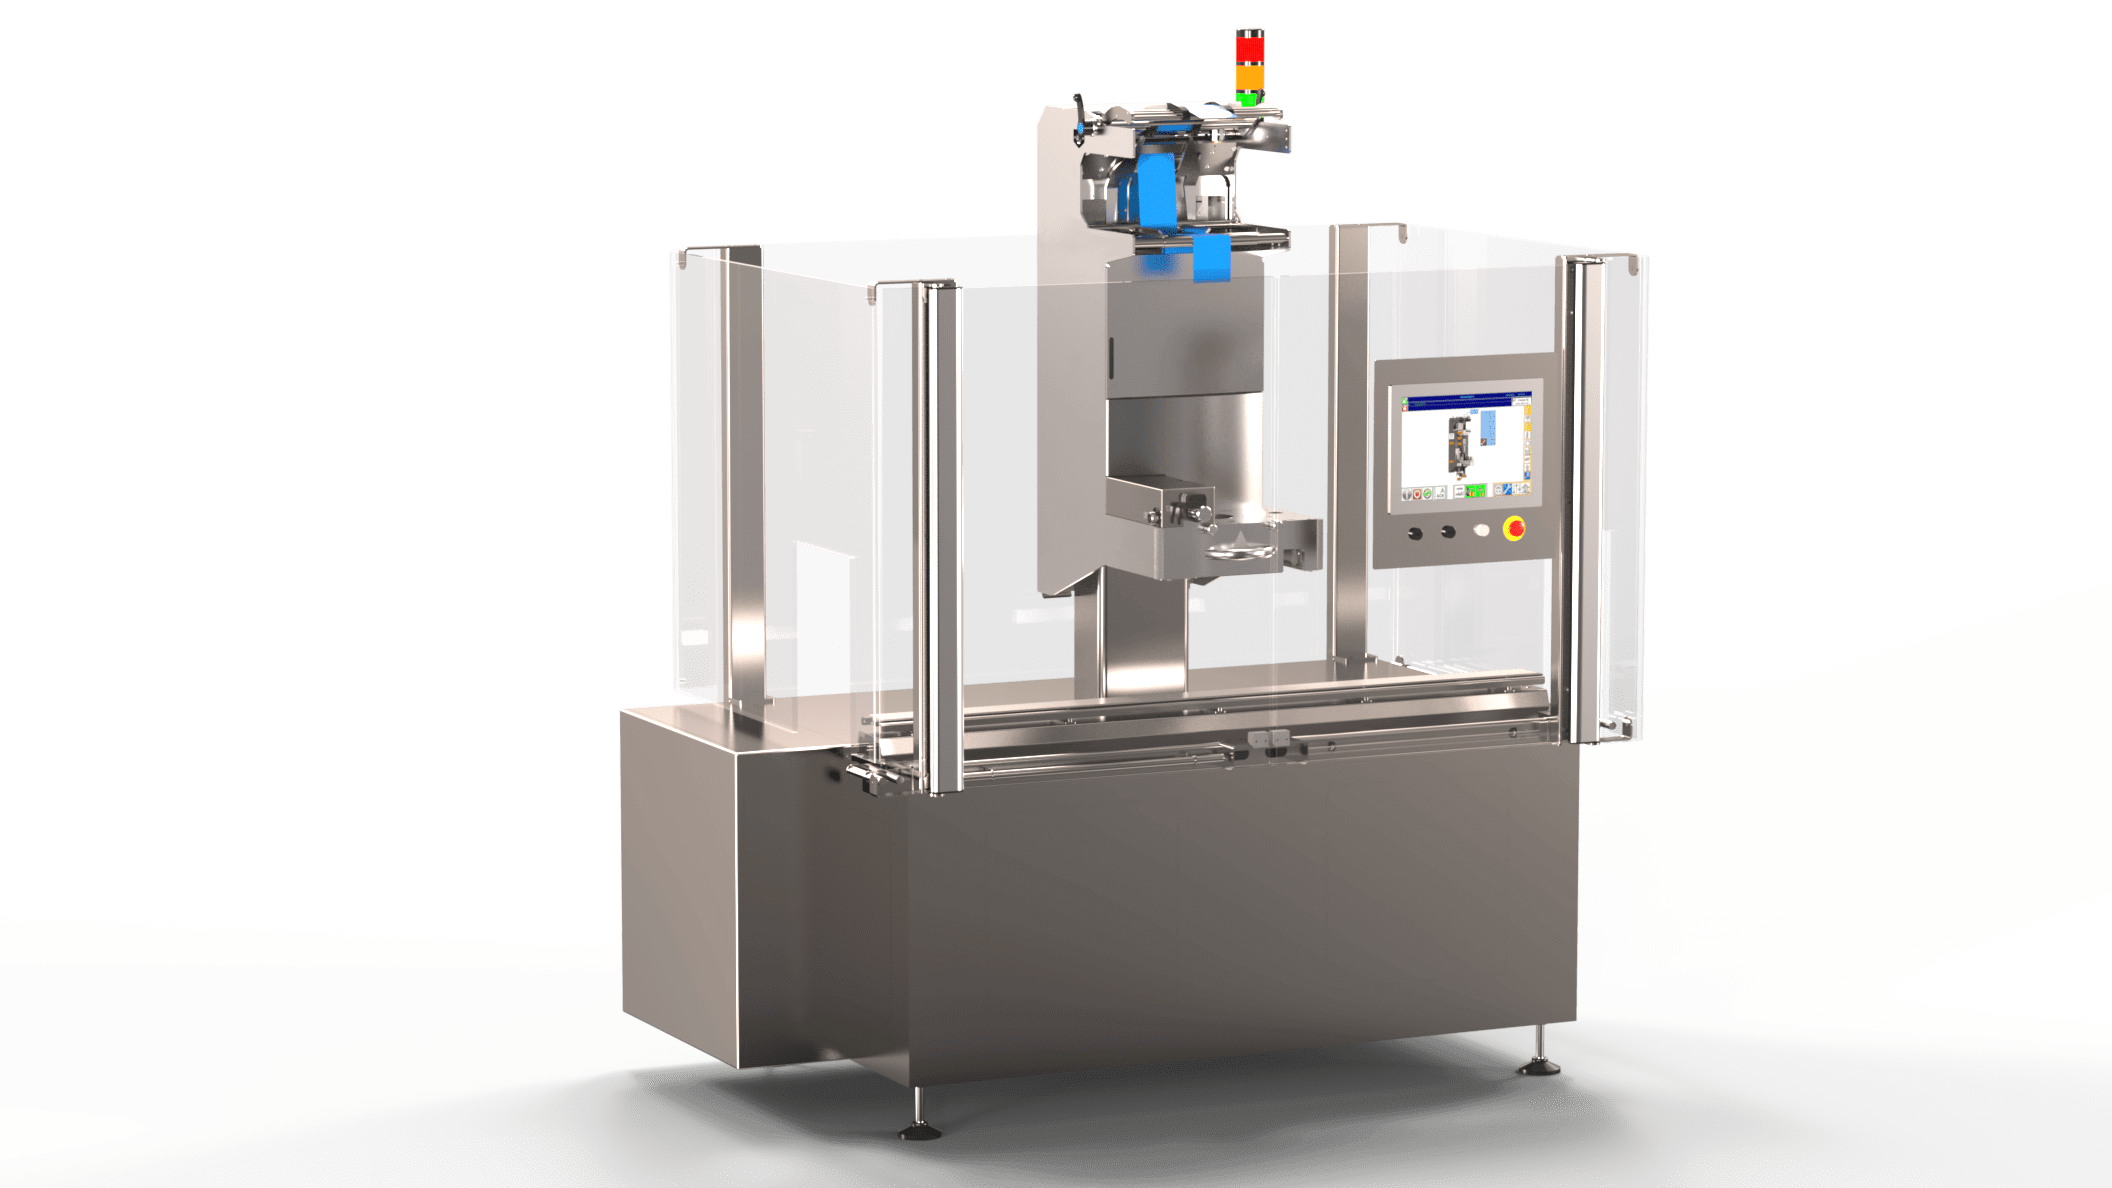 The Standalone Combi Machine TE 90, ready to start your glass carafes and flasks packaging operations